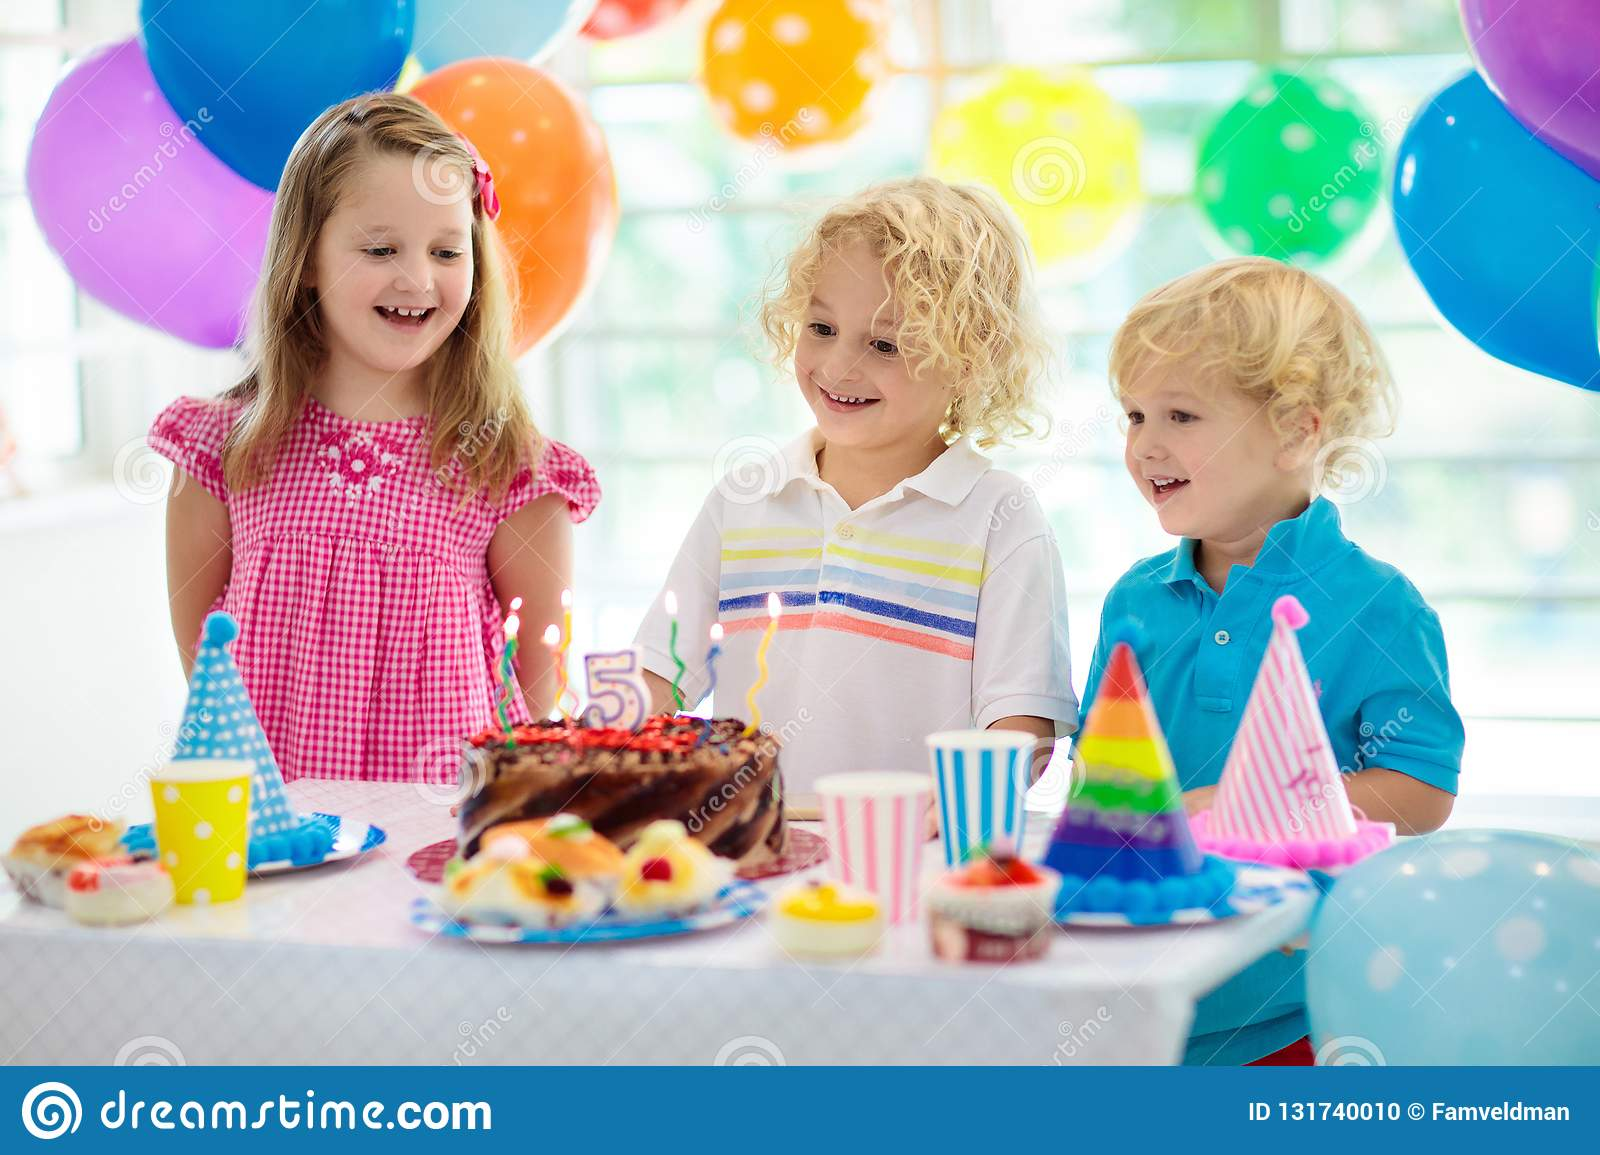 Kids birthday party. Child blowing out candles on colorful cake. Decorated home with rainbow flag banners, balloons. Farm animals